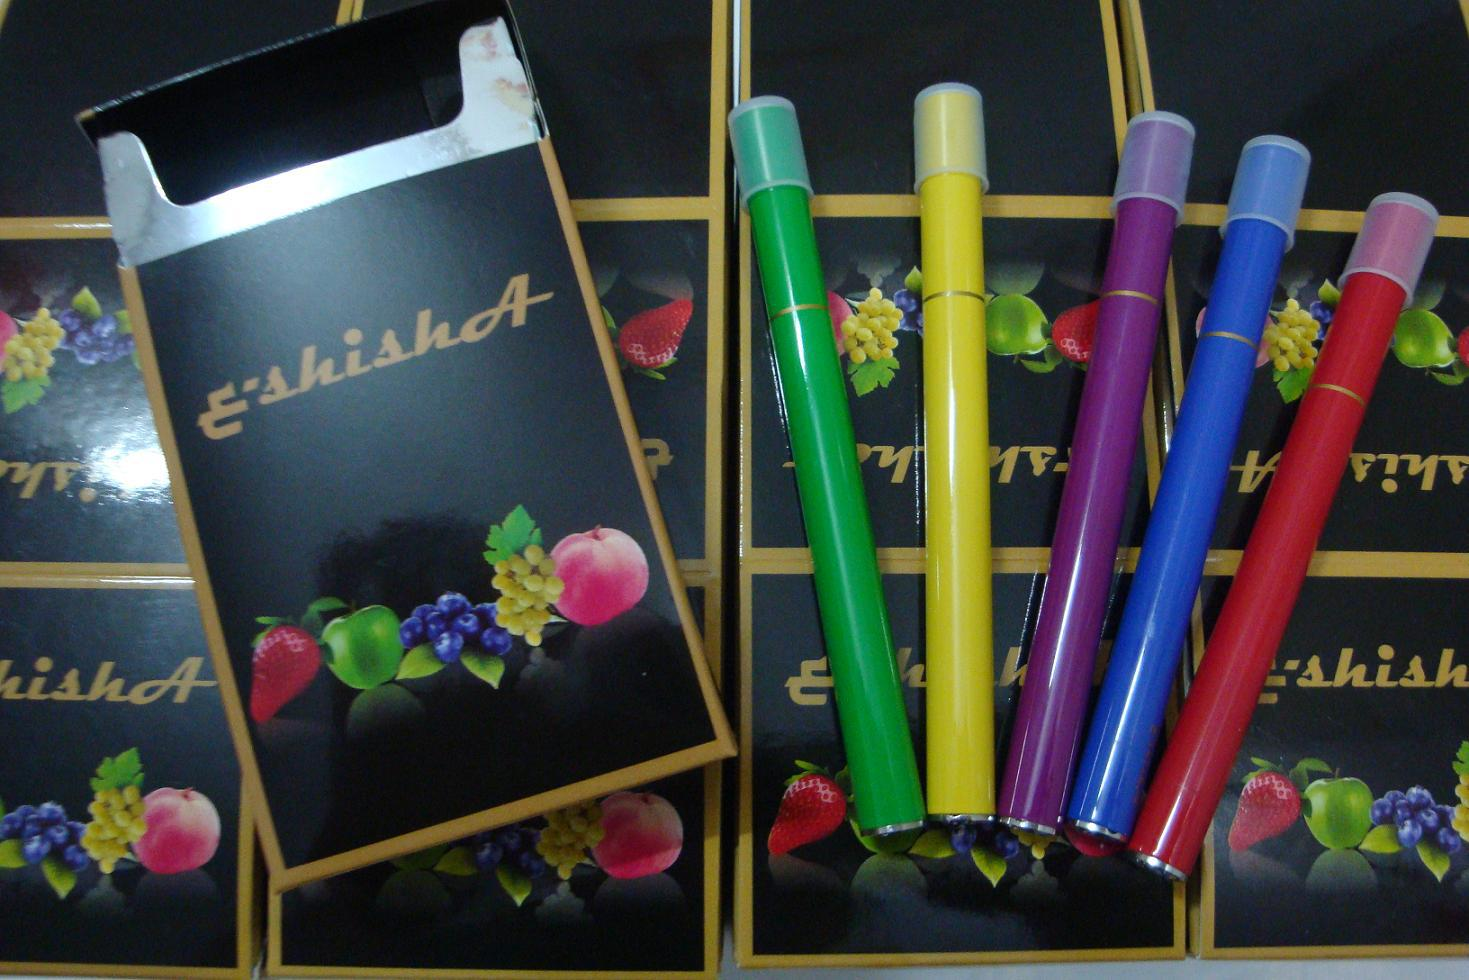 2013 New style mini electronic cigarette e-shisha pens with 5 color painting and 5 different flavors